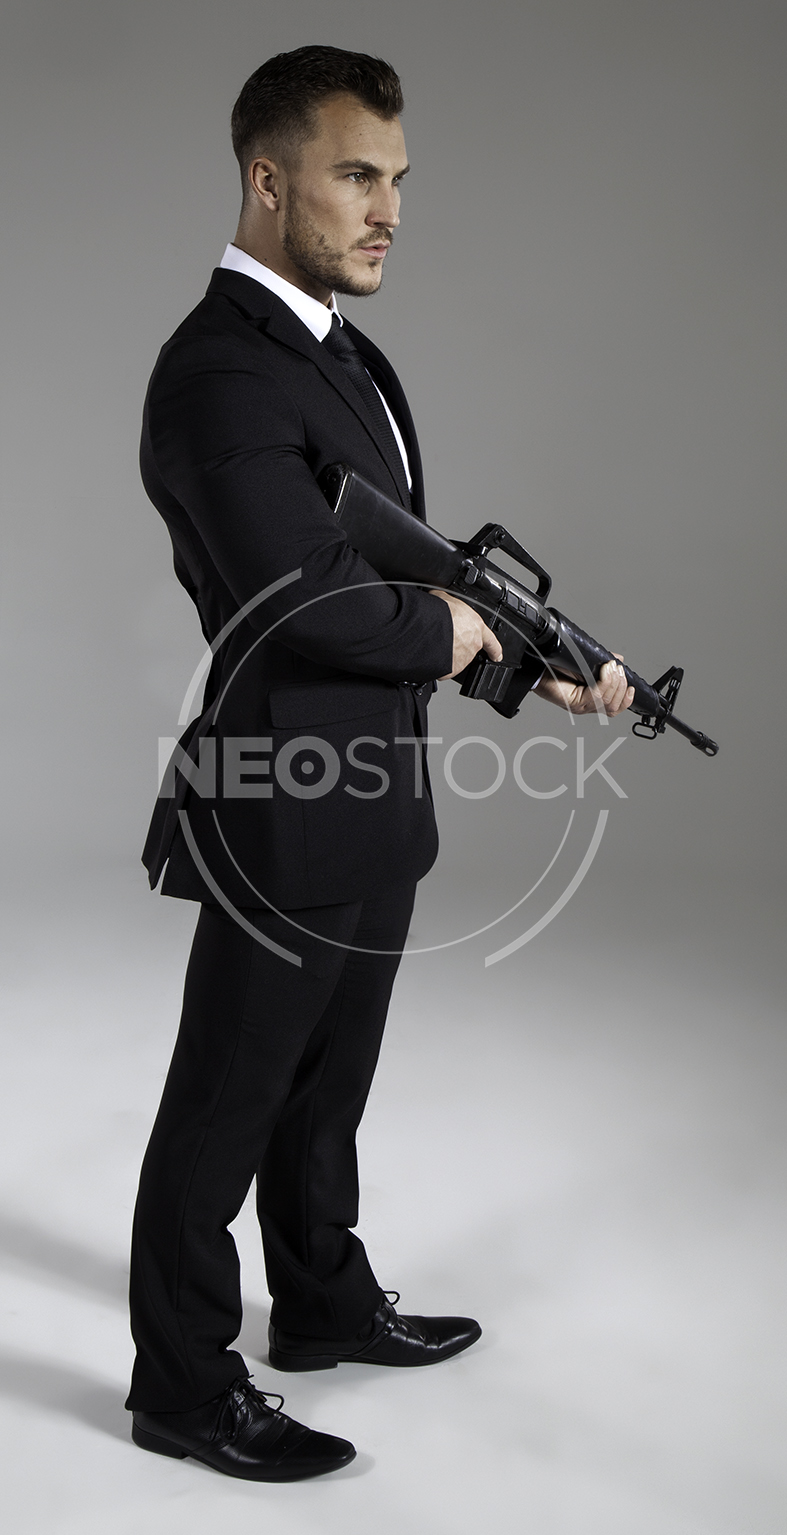 NeoStock - Danny D Spy Thriller - Stock Photography III